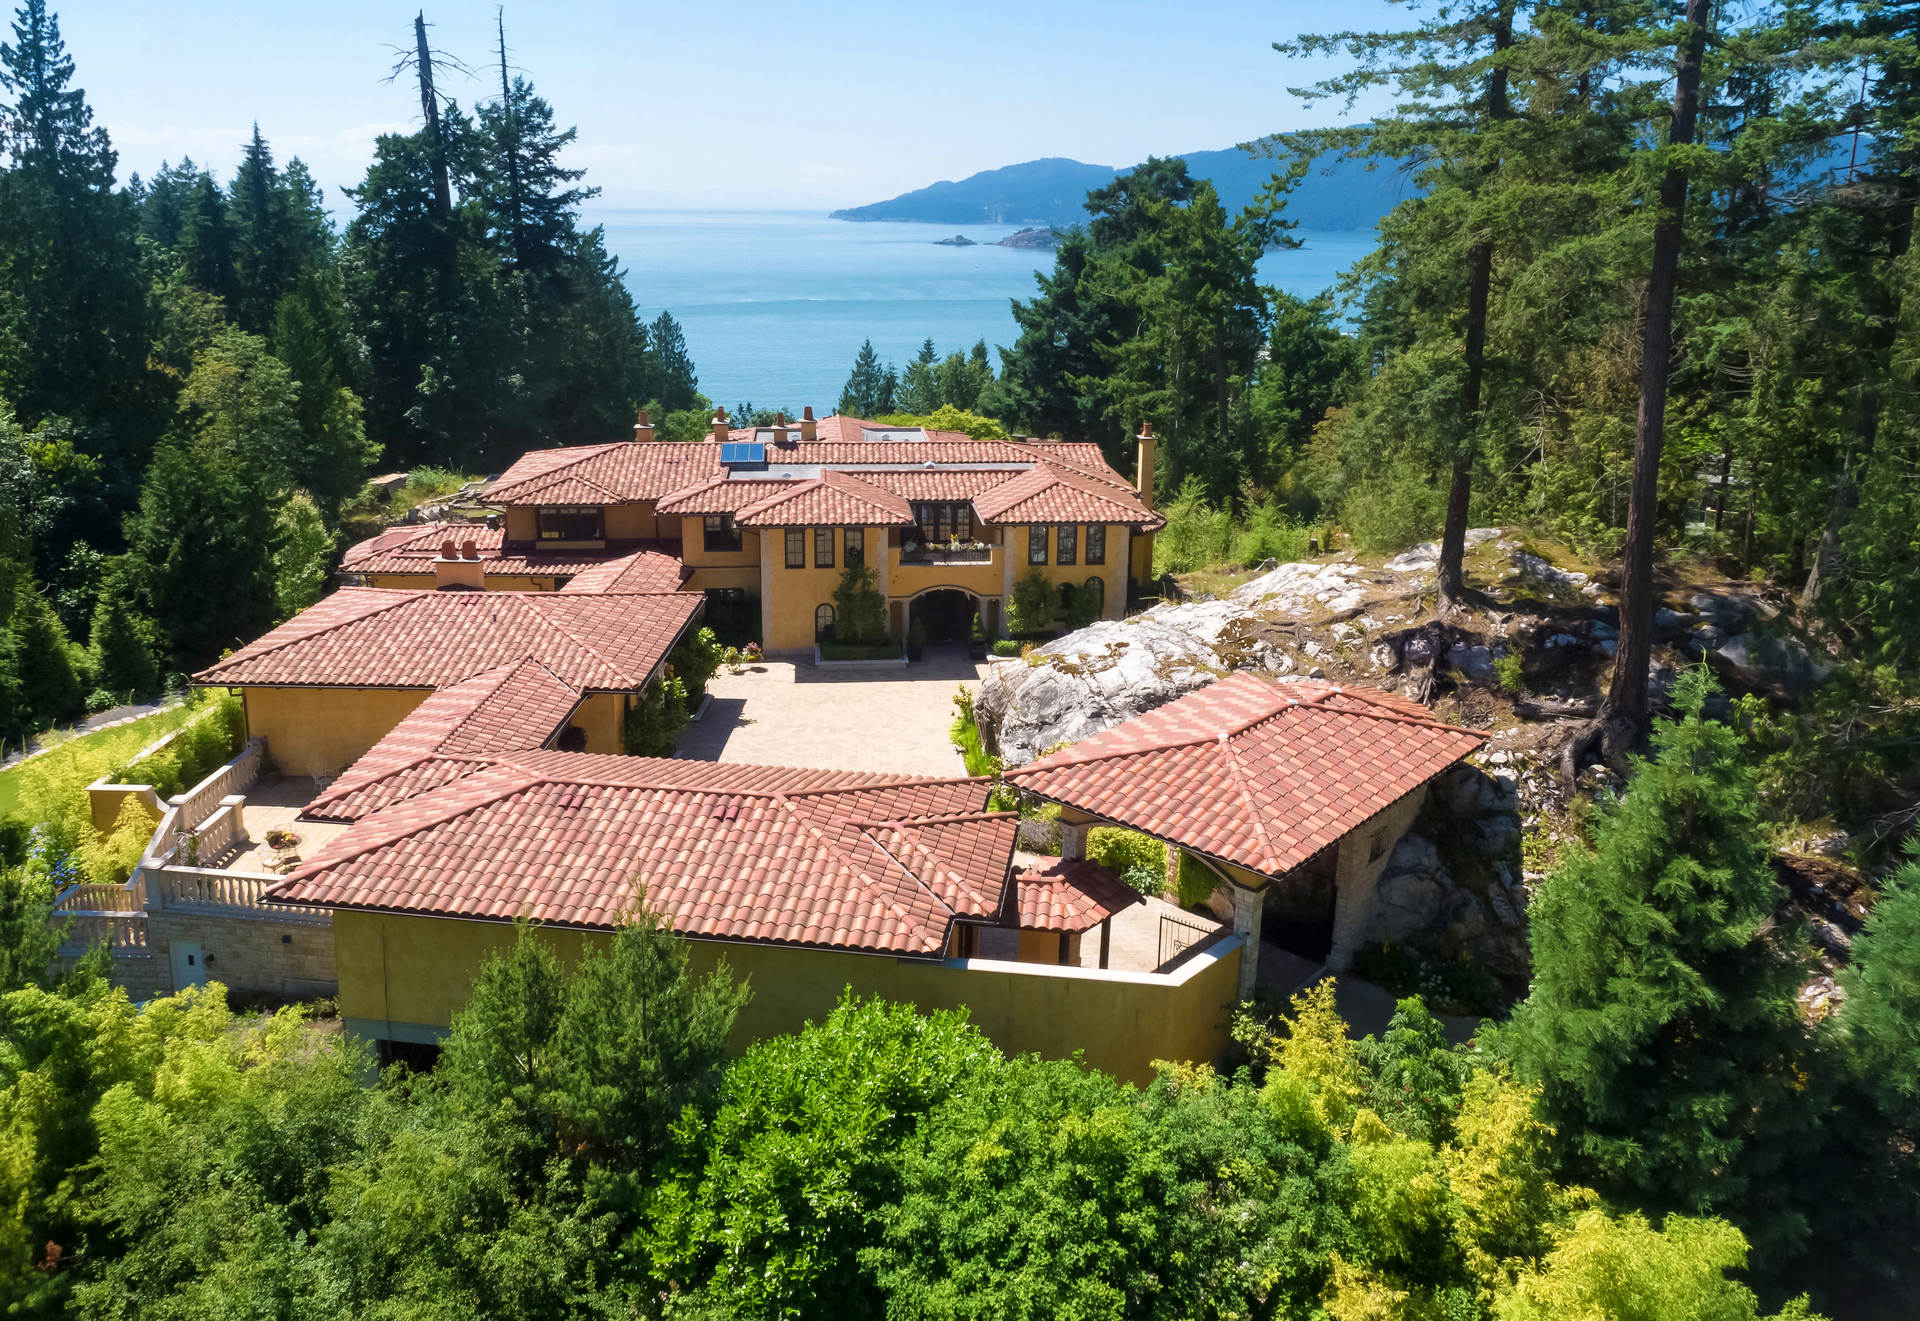 West Vancouver's Most Exclusive Estate